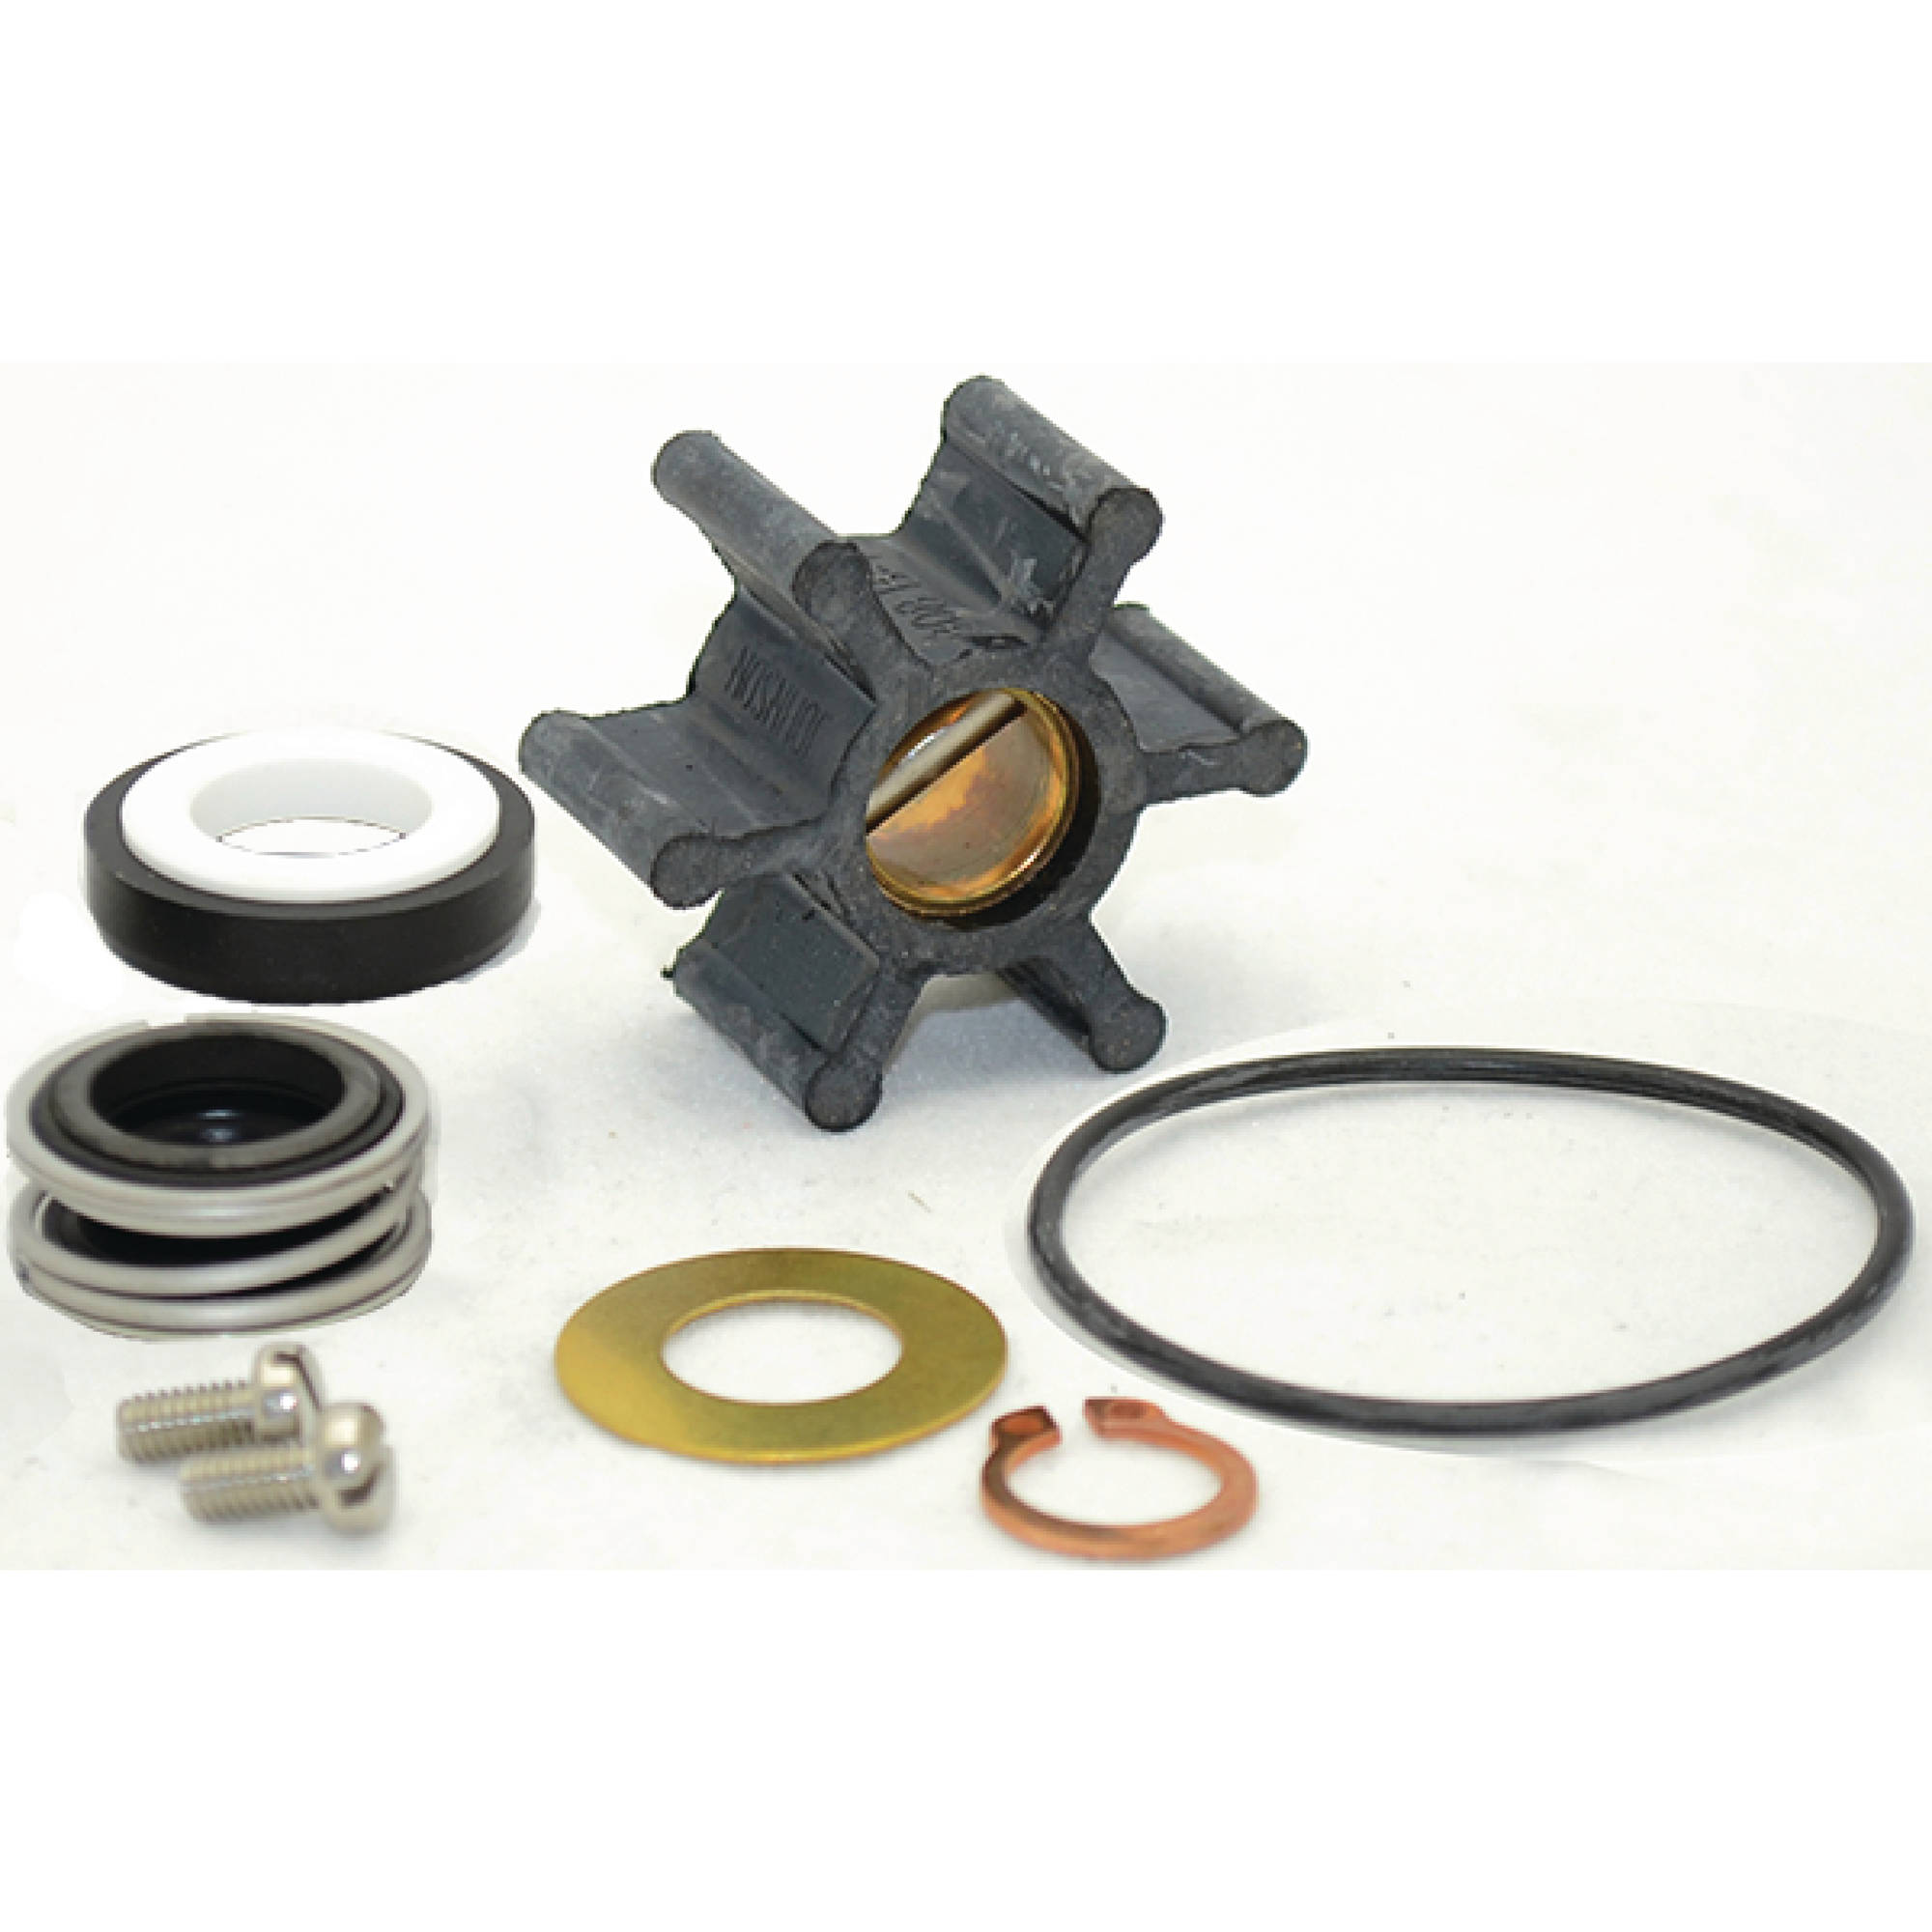 Johnson Pump 09-46840 Service Kit for F35B-8007/10-24569-51